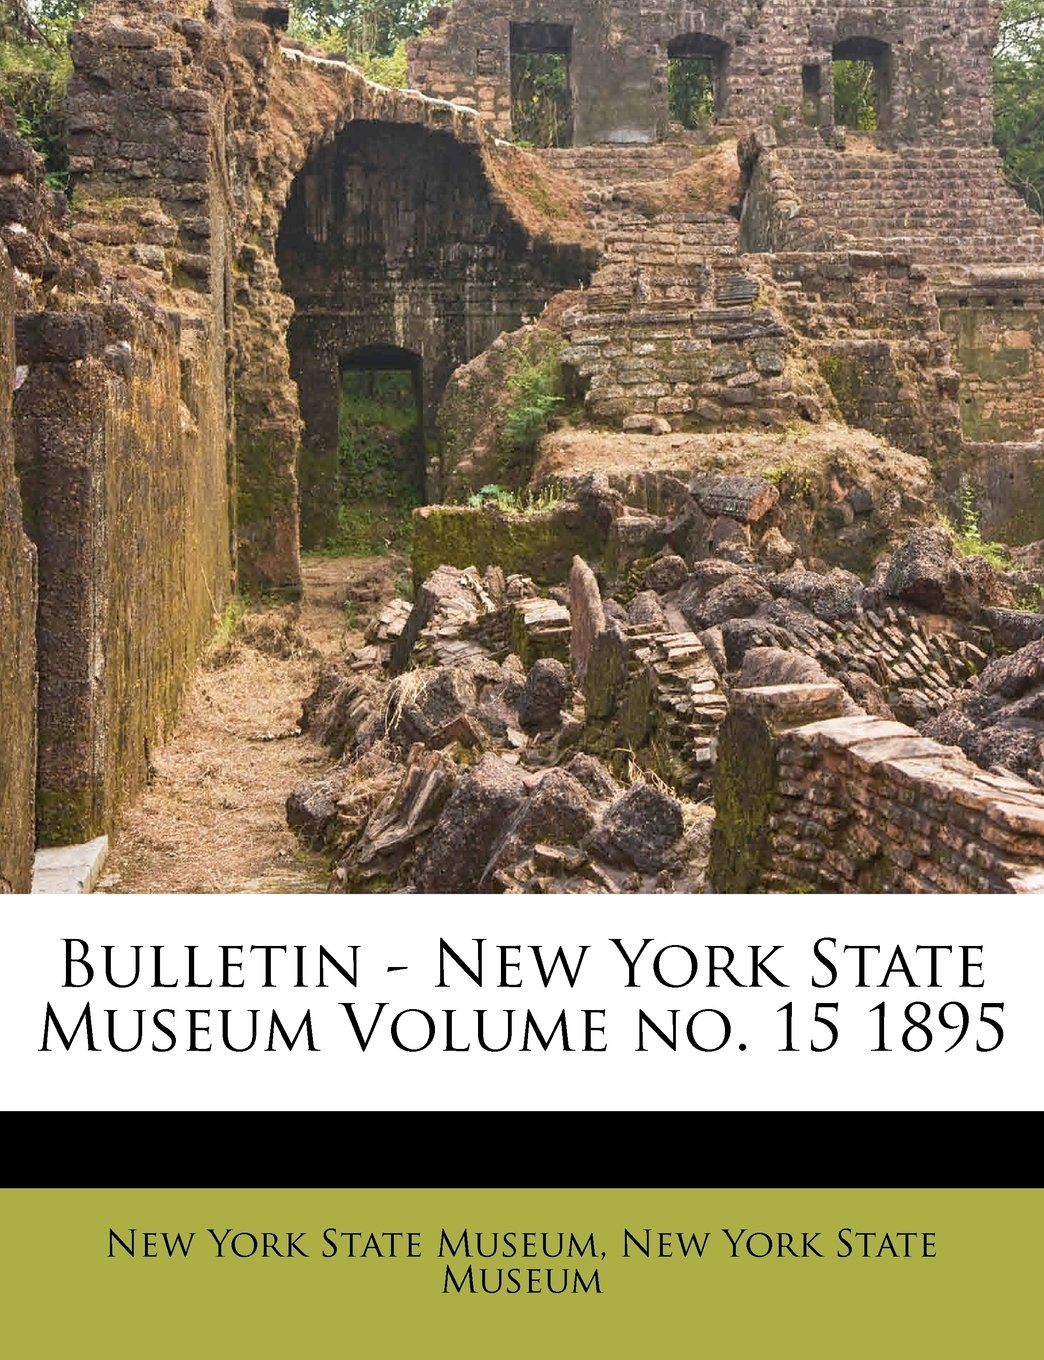 Bulletin - New York State Museum Volume no. 15 1895 pdf